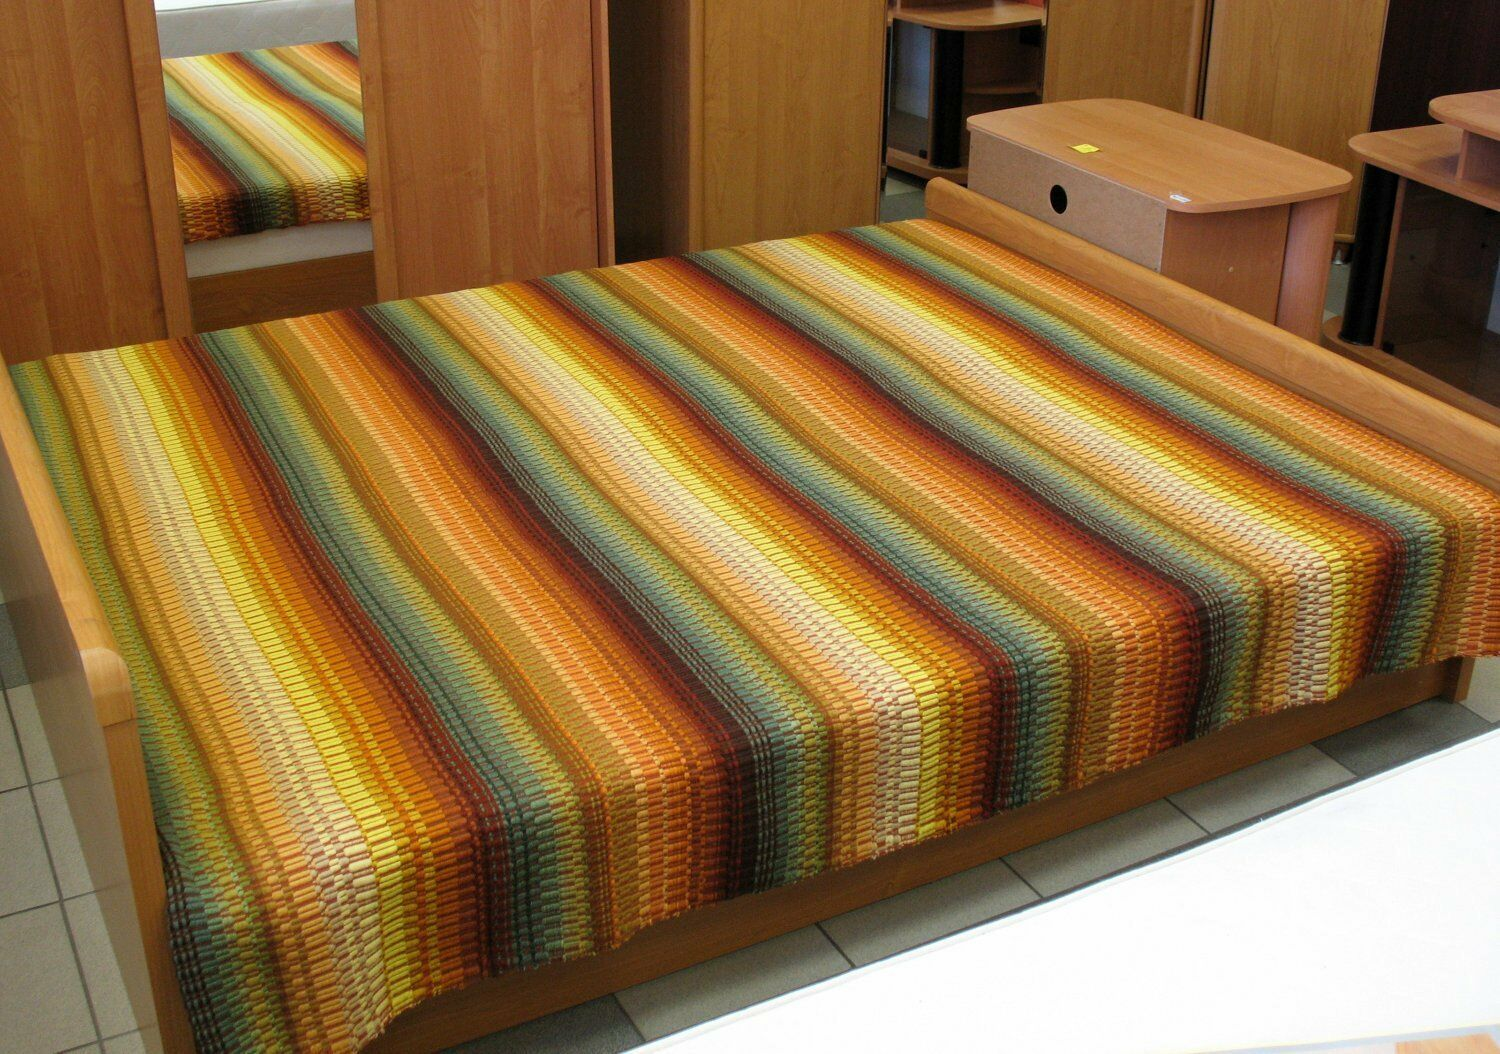 Twin Double Bed Quilt green brown orange tones 87  x 78  hand woven warm